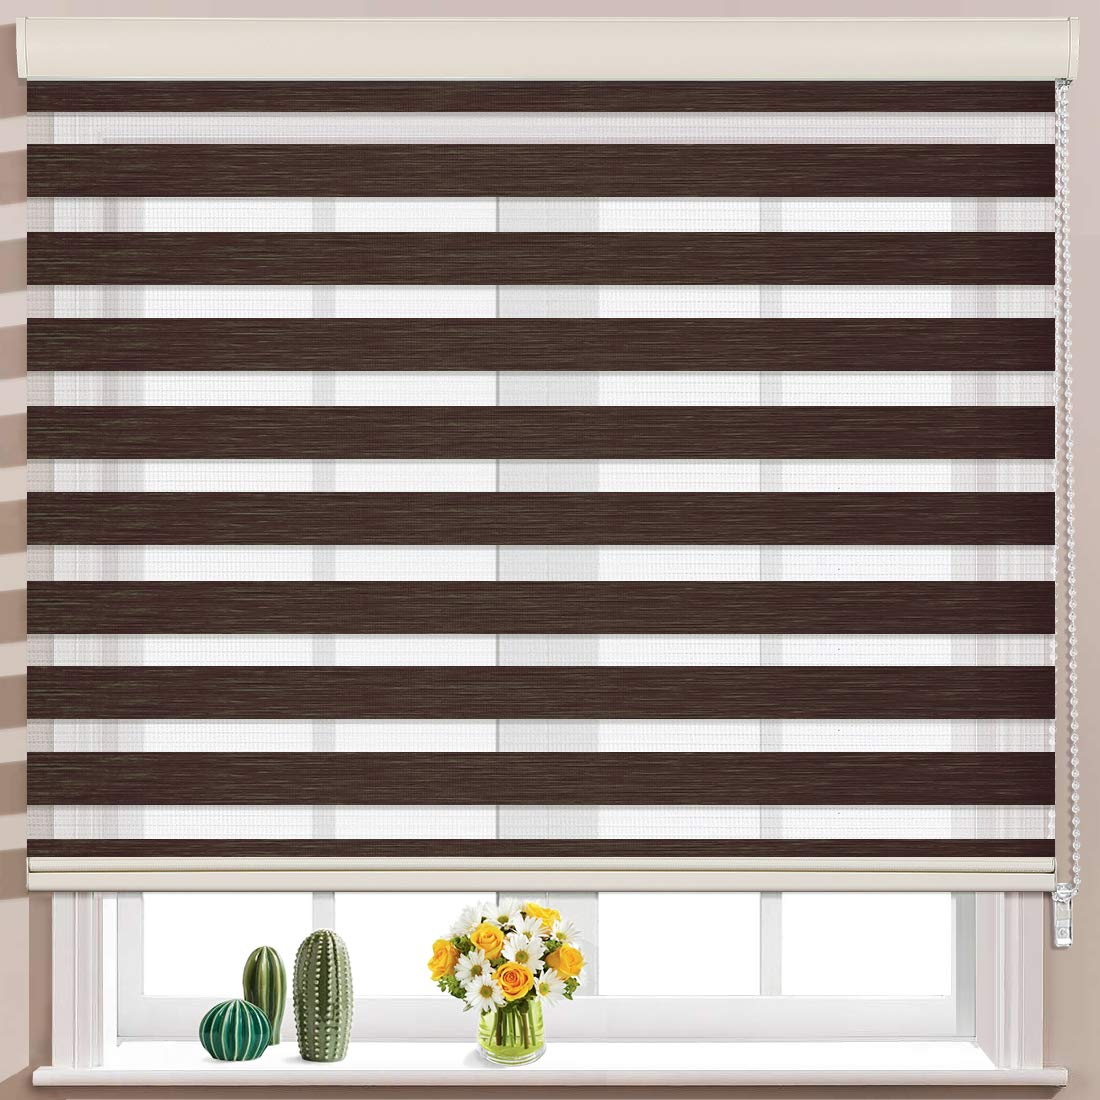 Keego Window Blinds Custom Cut to Size, Brownish Brown Zebra Blinds with Dual Layer Roller Shades, [Size W 46 x H 56] Dual Layer Sheer or Privacy Light Control for Day and Night